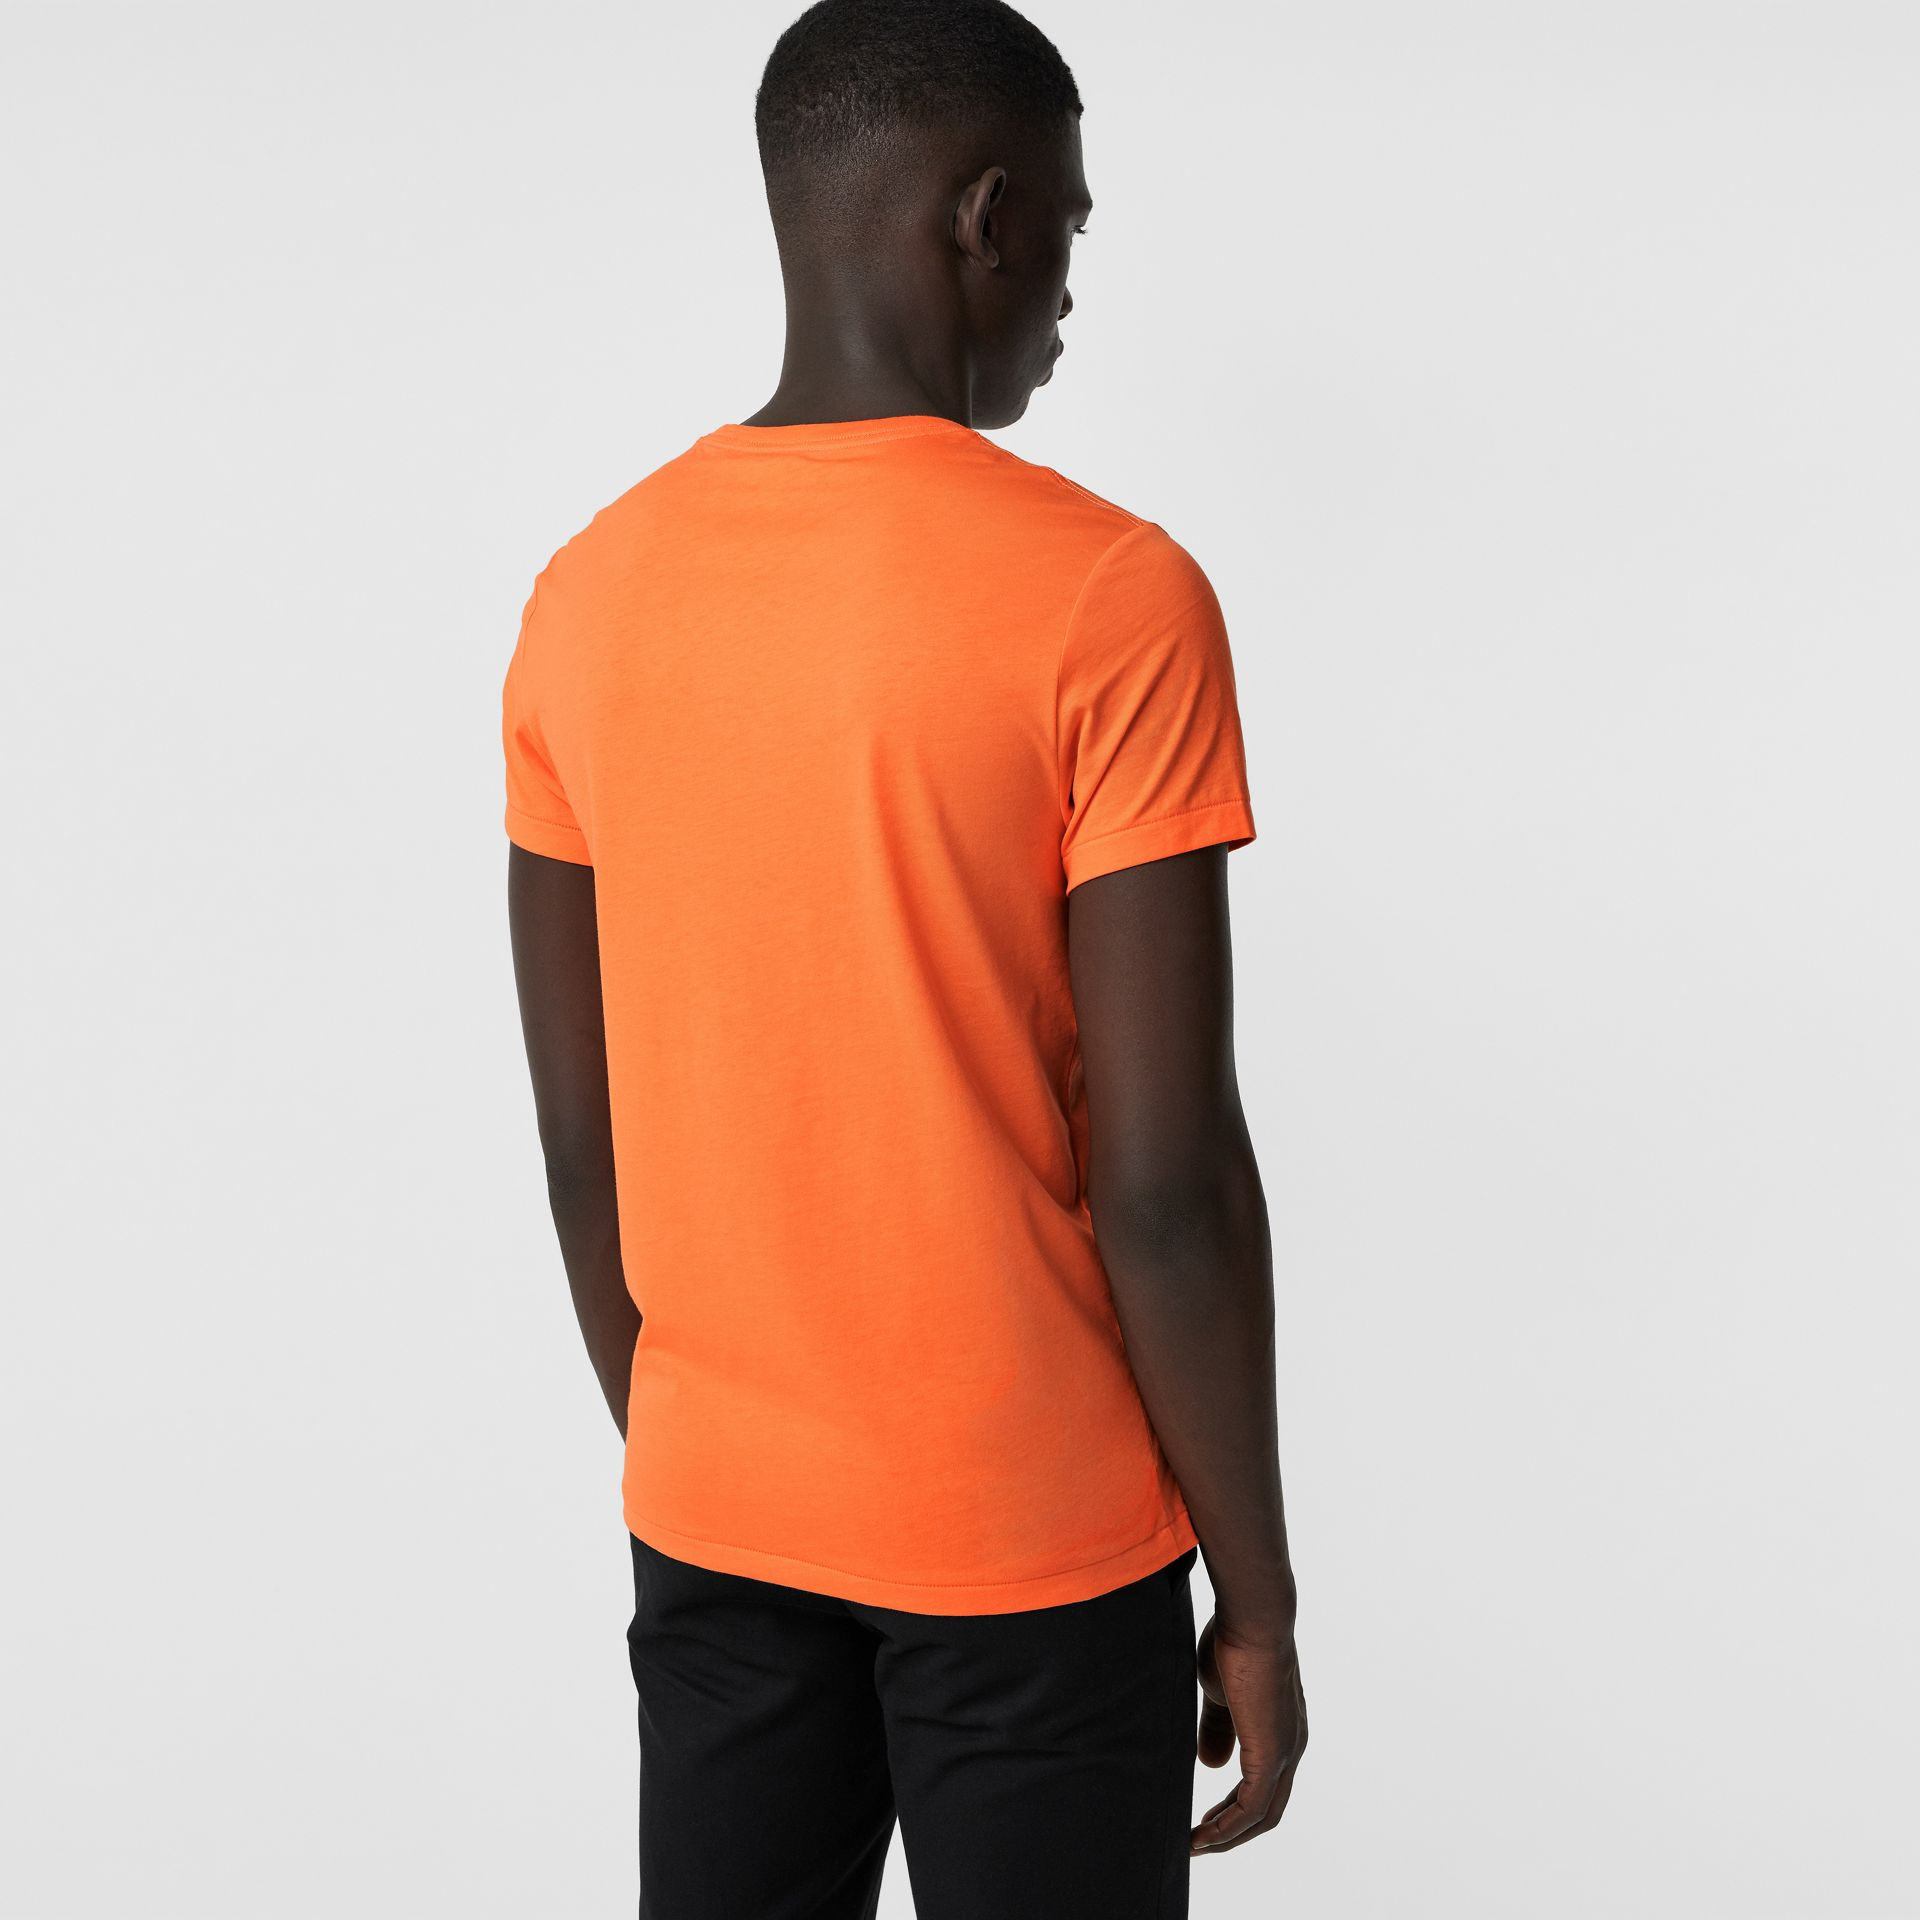 Cotton Jersey T-shirt in Bright Orange - Men | Burberry - gallery image 2